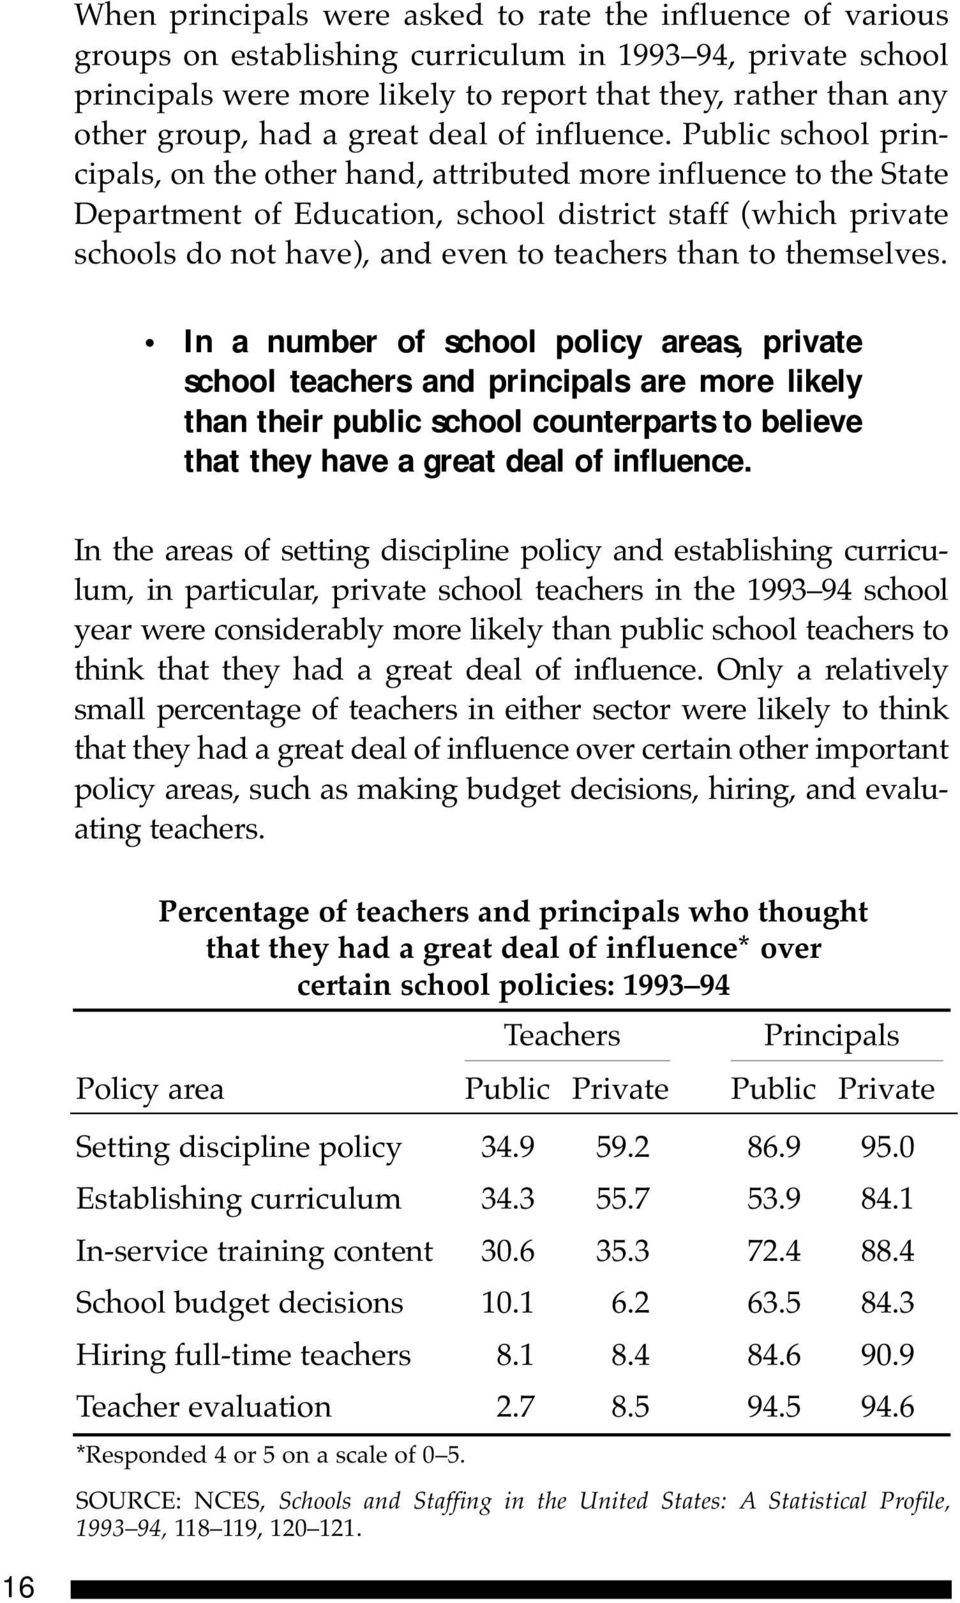 Public school principals, on the other hand, attributed more influence to the State Department of Education, school district staff (which private schools do not have), and even to teachers than to